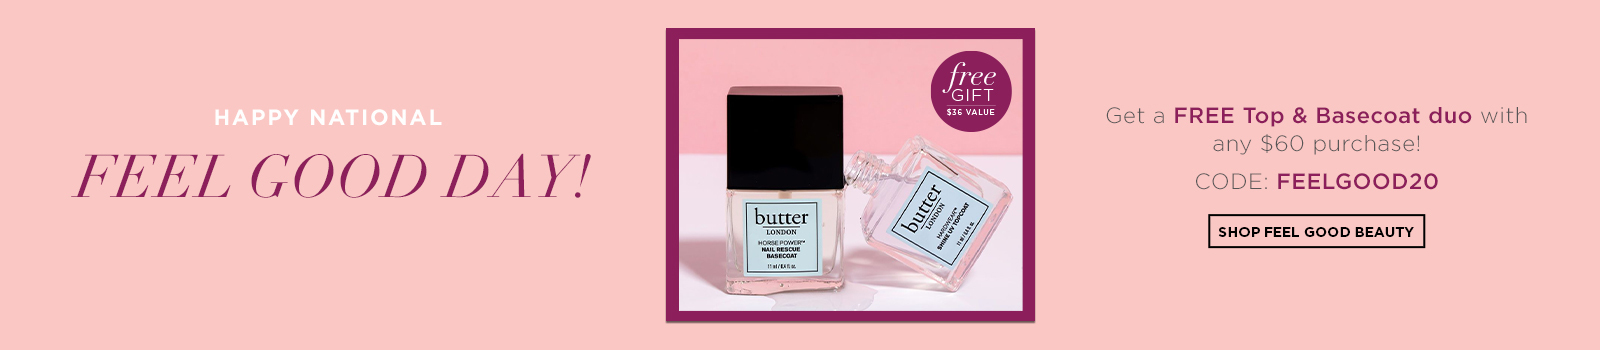 FREE Top and Base Coat Duo with $60